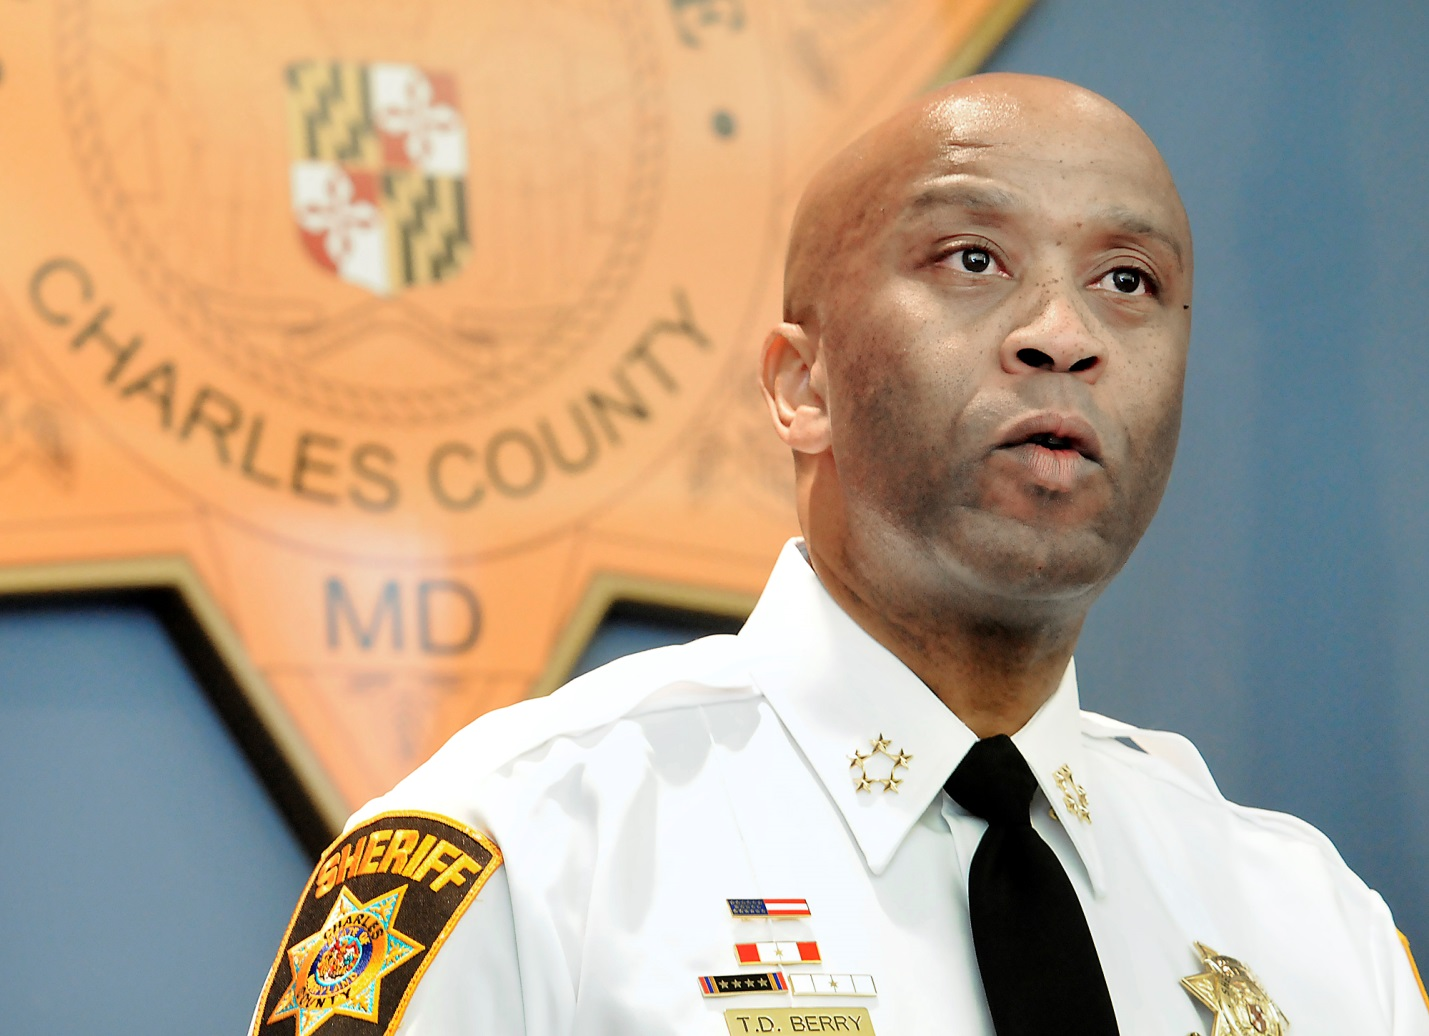 Sheriff Berry announces the indictment of Raymond Daniel Posey III in connection with the murder of Crystal Anderson (Photo Courtesy of the Maryland Independent)